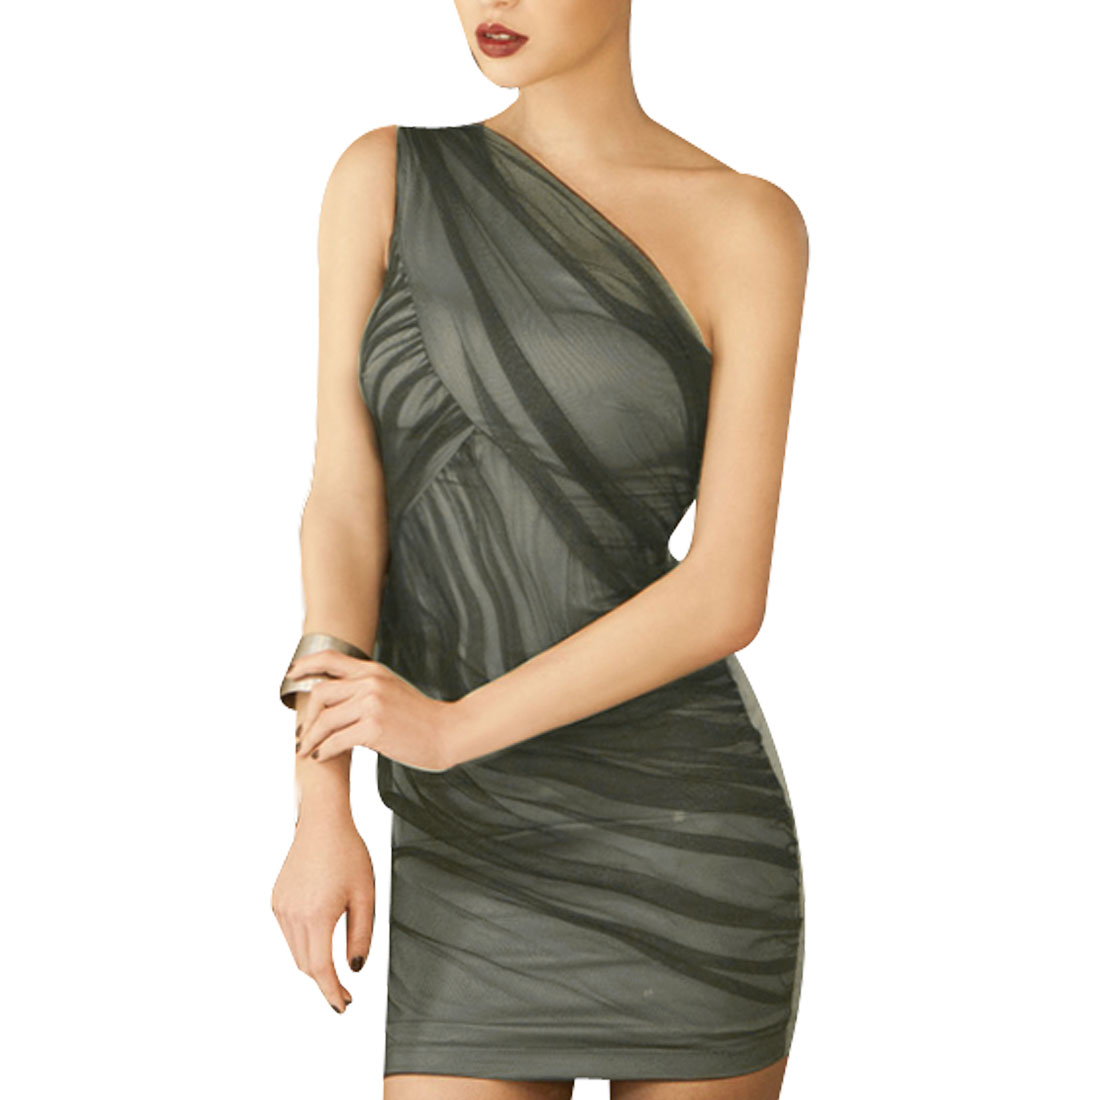 Women Light Gray Summer One Shoulder Sleeveless Tight-fitting Lining Mini Dress XS